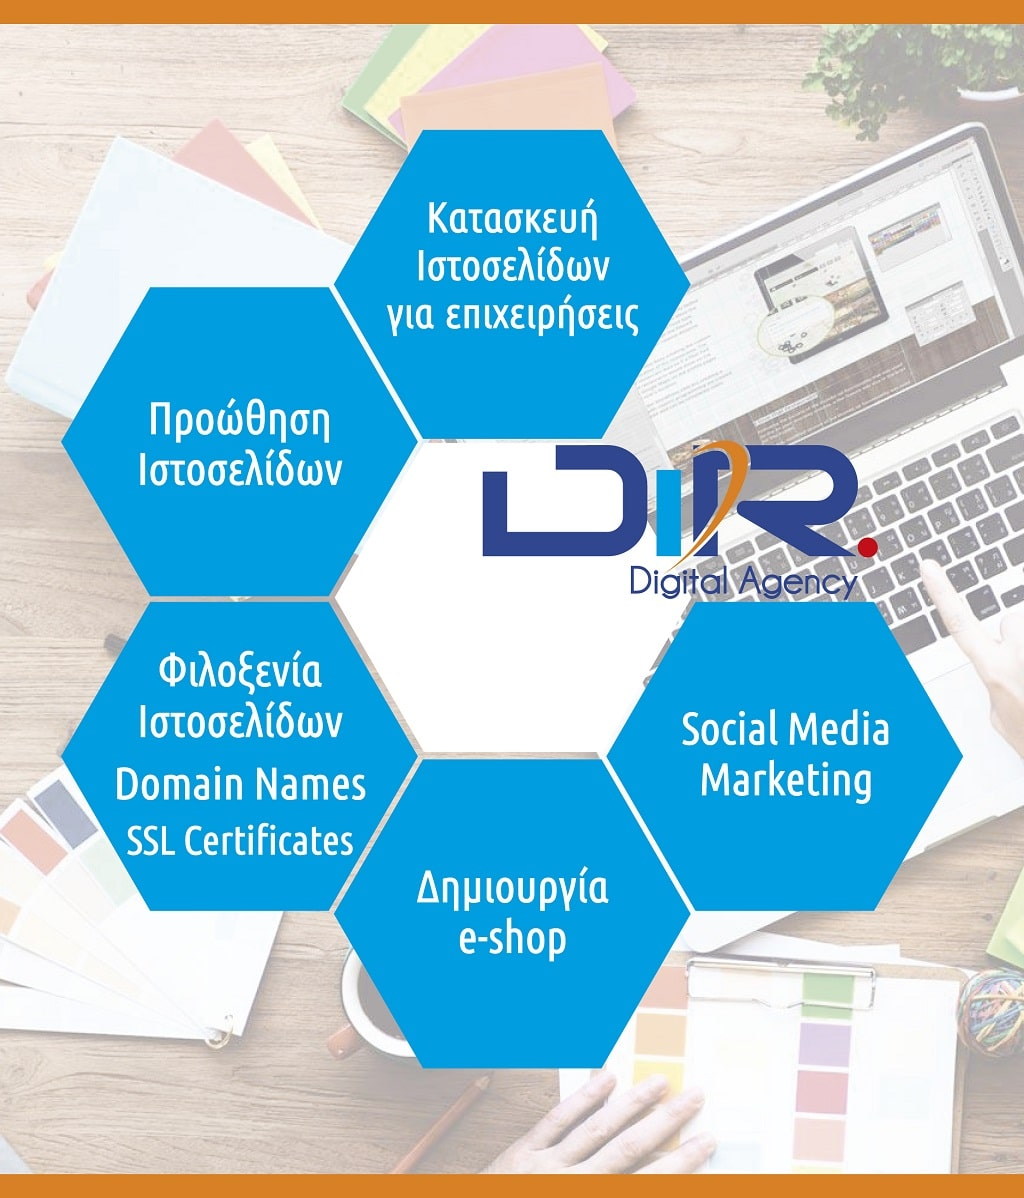 Digital Agency Athens Greece